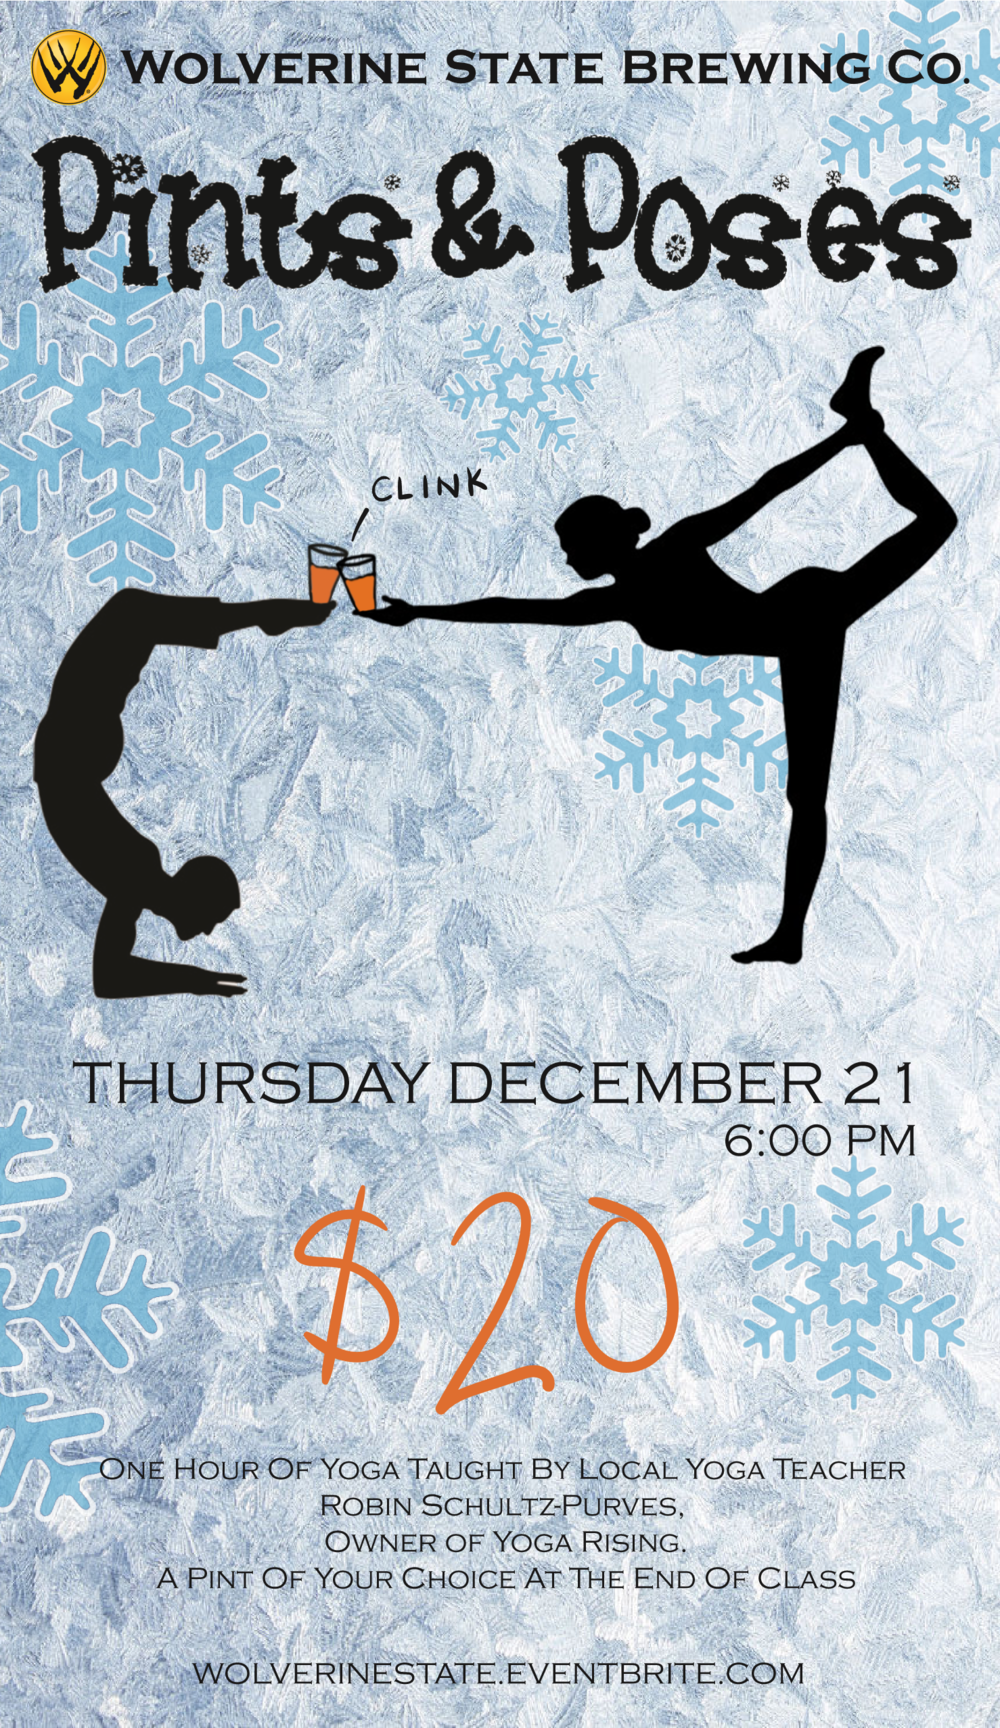 Relax from the holiday stress with this is an hour-long, all-levels vinyasa class. Tickets are $20 apiece and include the yoga session and a pint of your choice at the end of class. Class will be led by Robin Schultz-Purves, a local yoga instructor who has led several Pints and Poses classes at Wolverine! These classes do sell out pretty quickly, so make sure to grab your tickets while they're available.